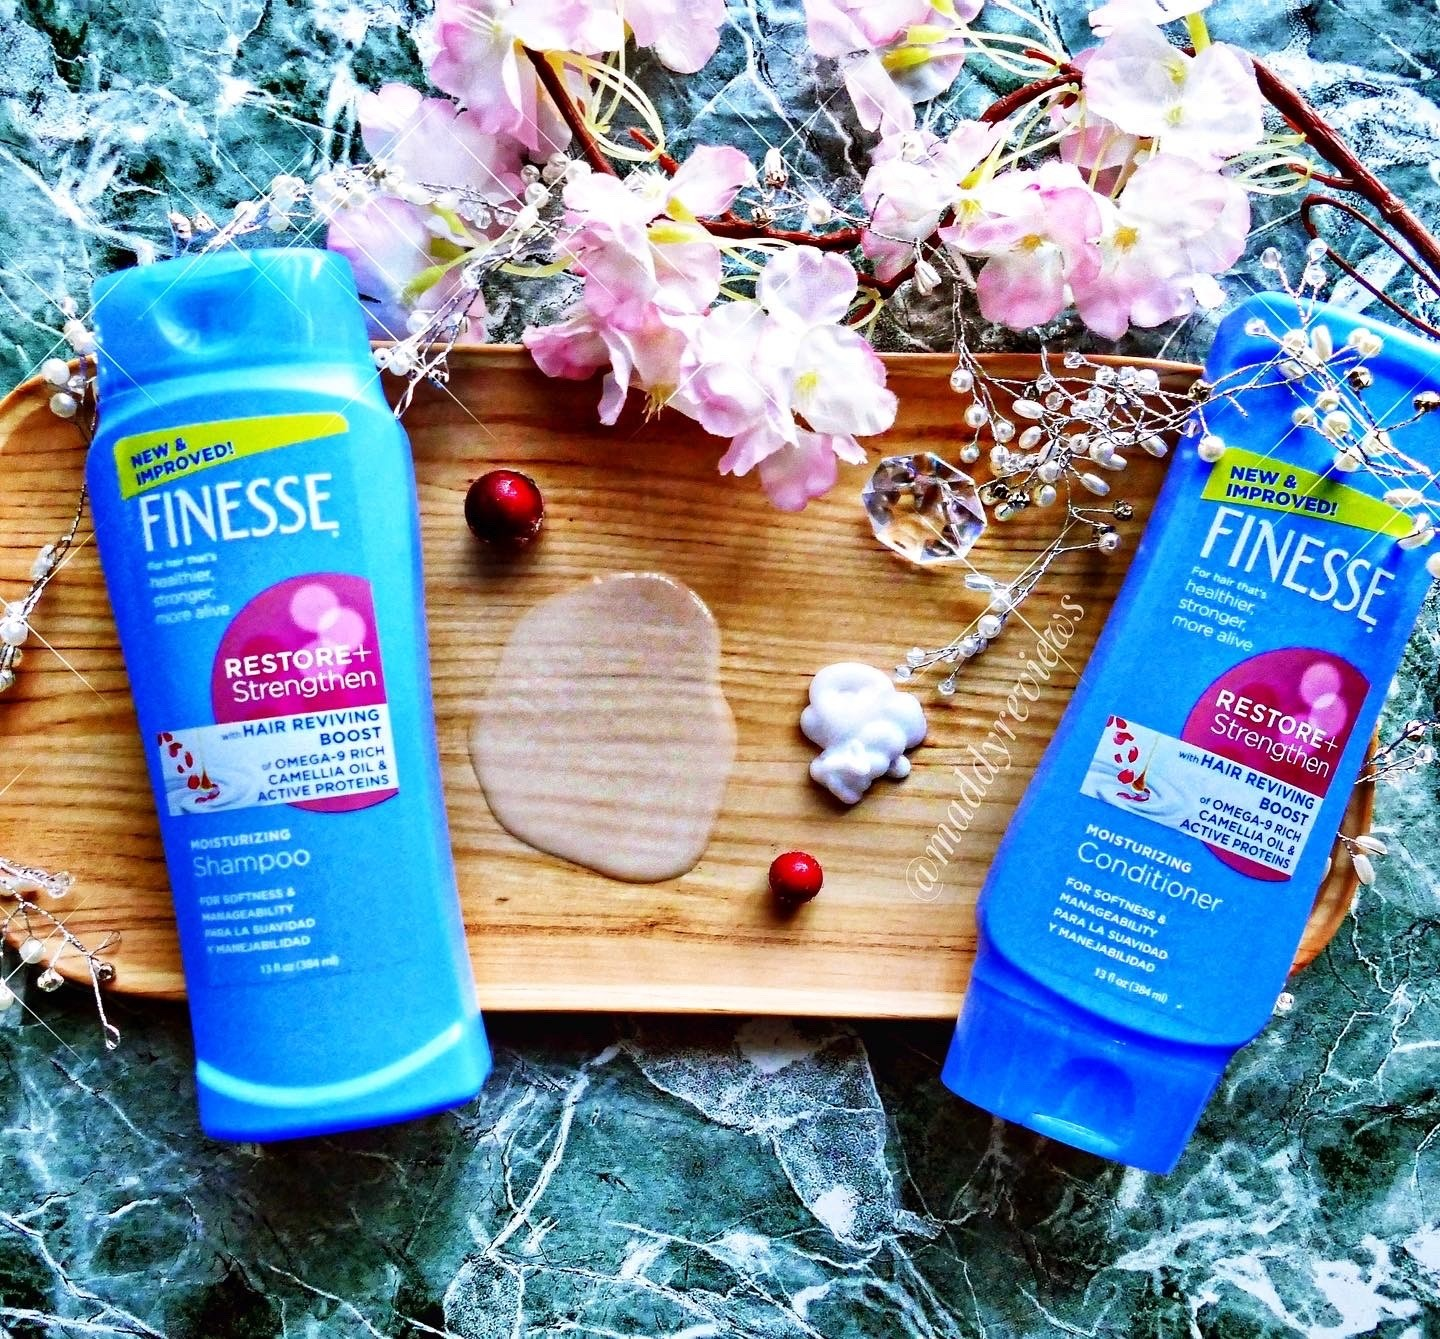 Finesse-Restore-Strengthen-hair-reviving-boost-omega-oil-active-proteins-moisturizing-shampoo-conditioner-best-review